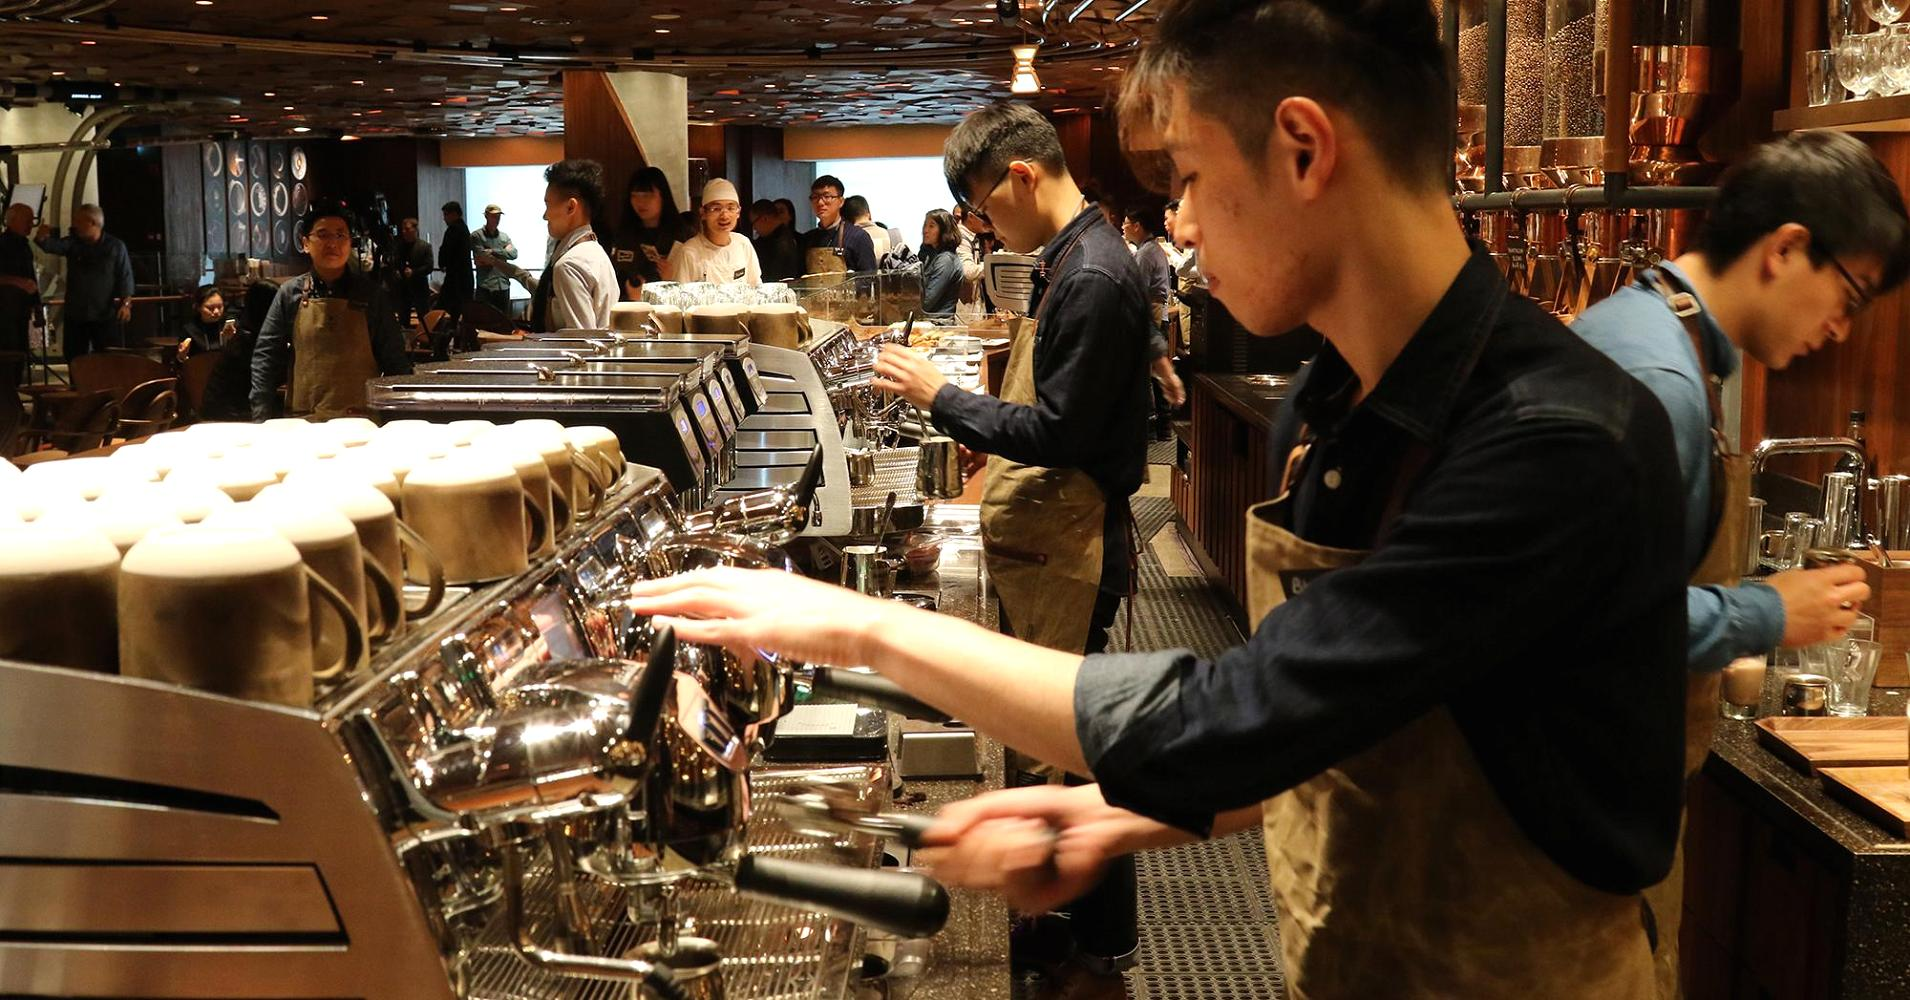 Starbucks is opening a store in China every 15 hours | South